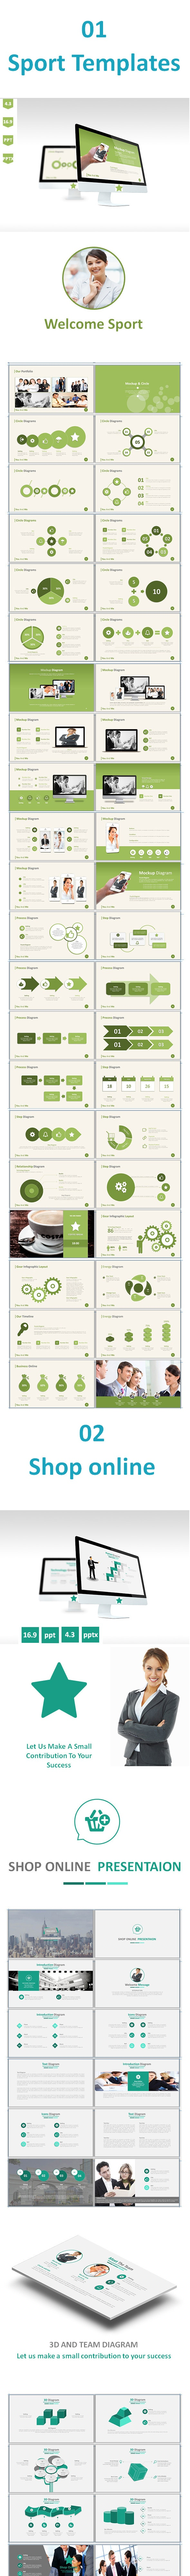 3 in 1 Bundle Powerpoint Templates - Business PowerPoint Templates